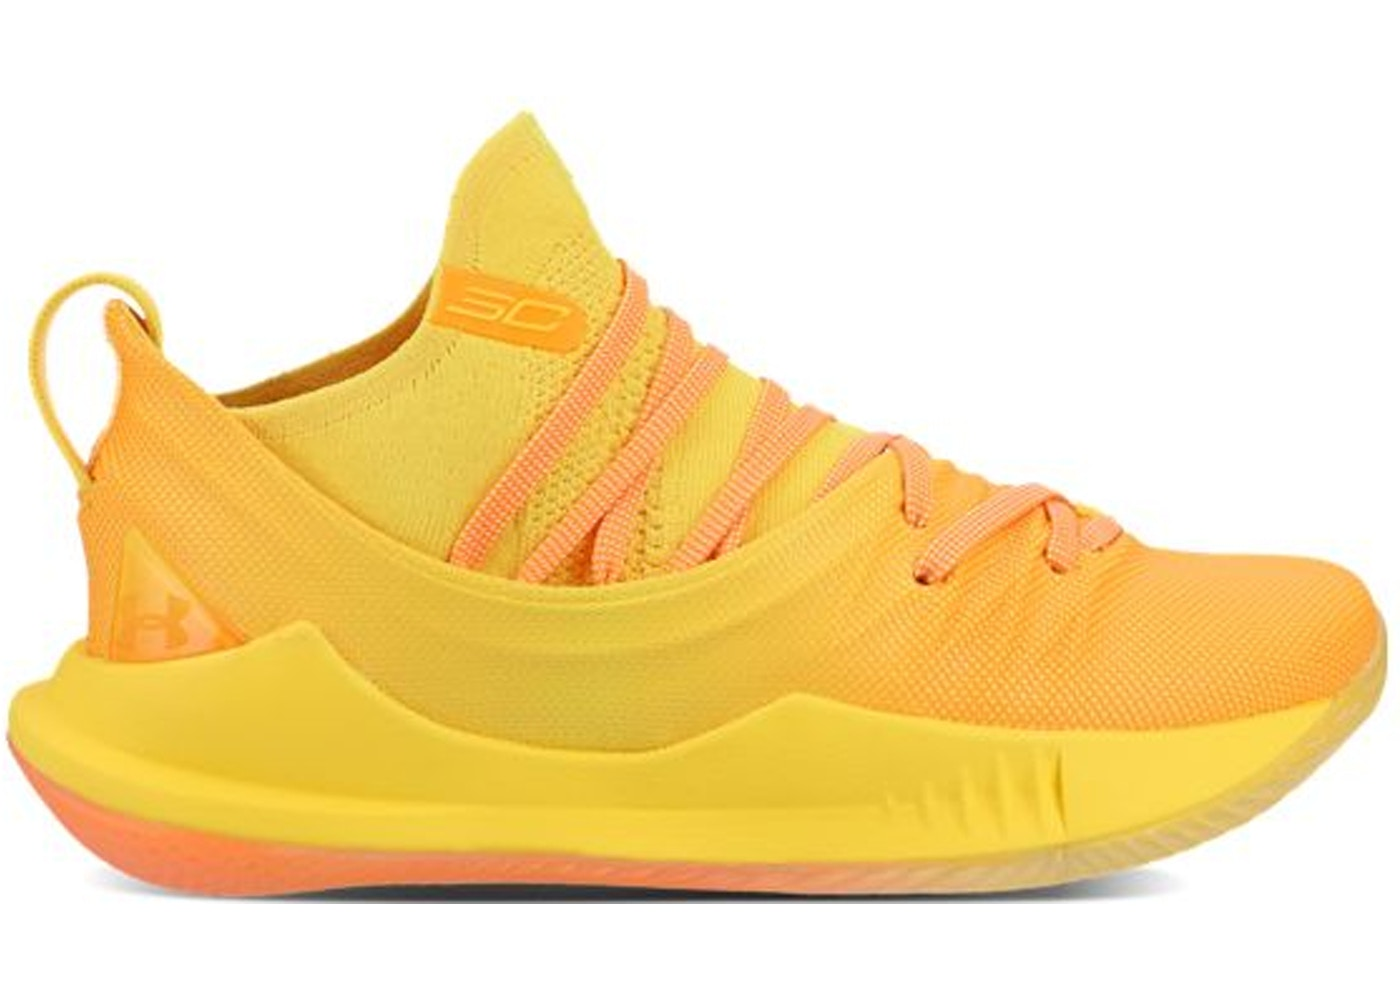 Under Armour Curry 5 Yellow Orange - 3021708-700 6accde6a5